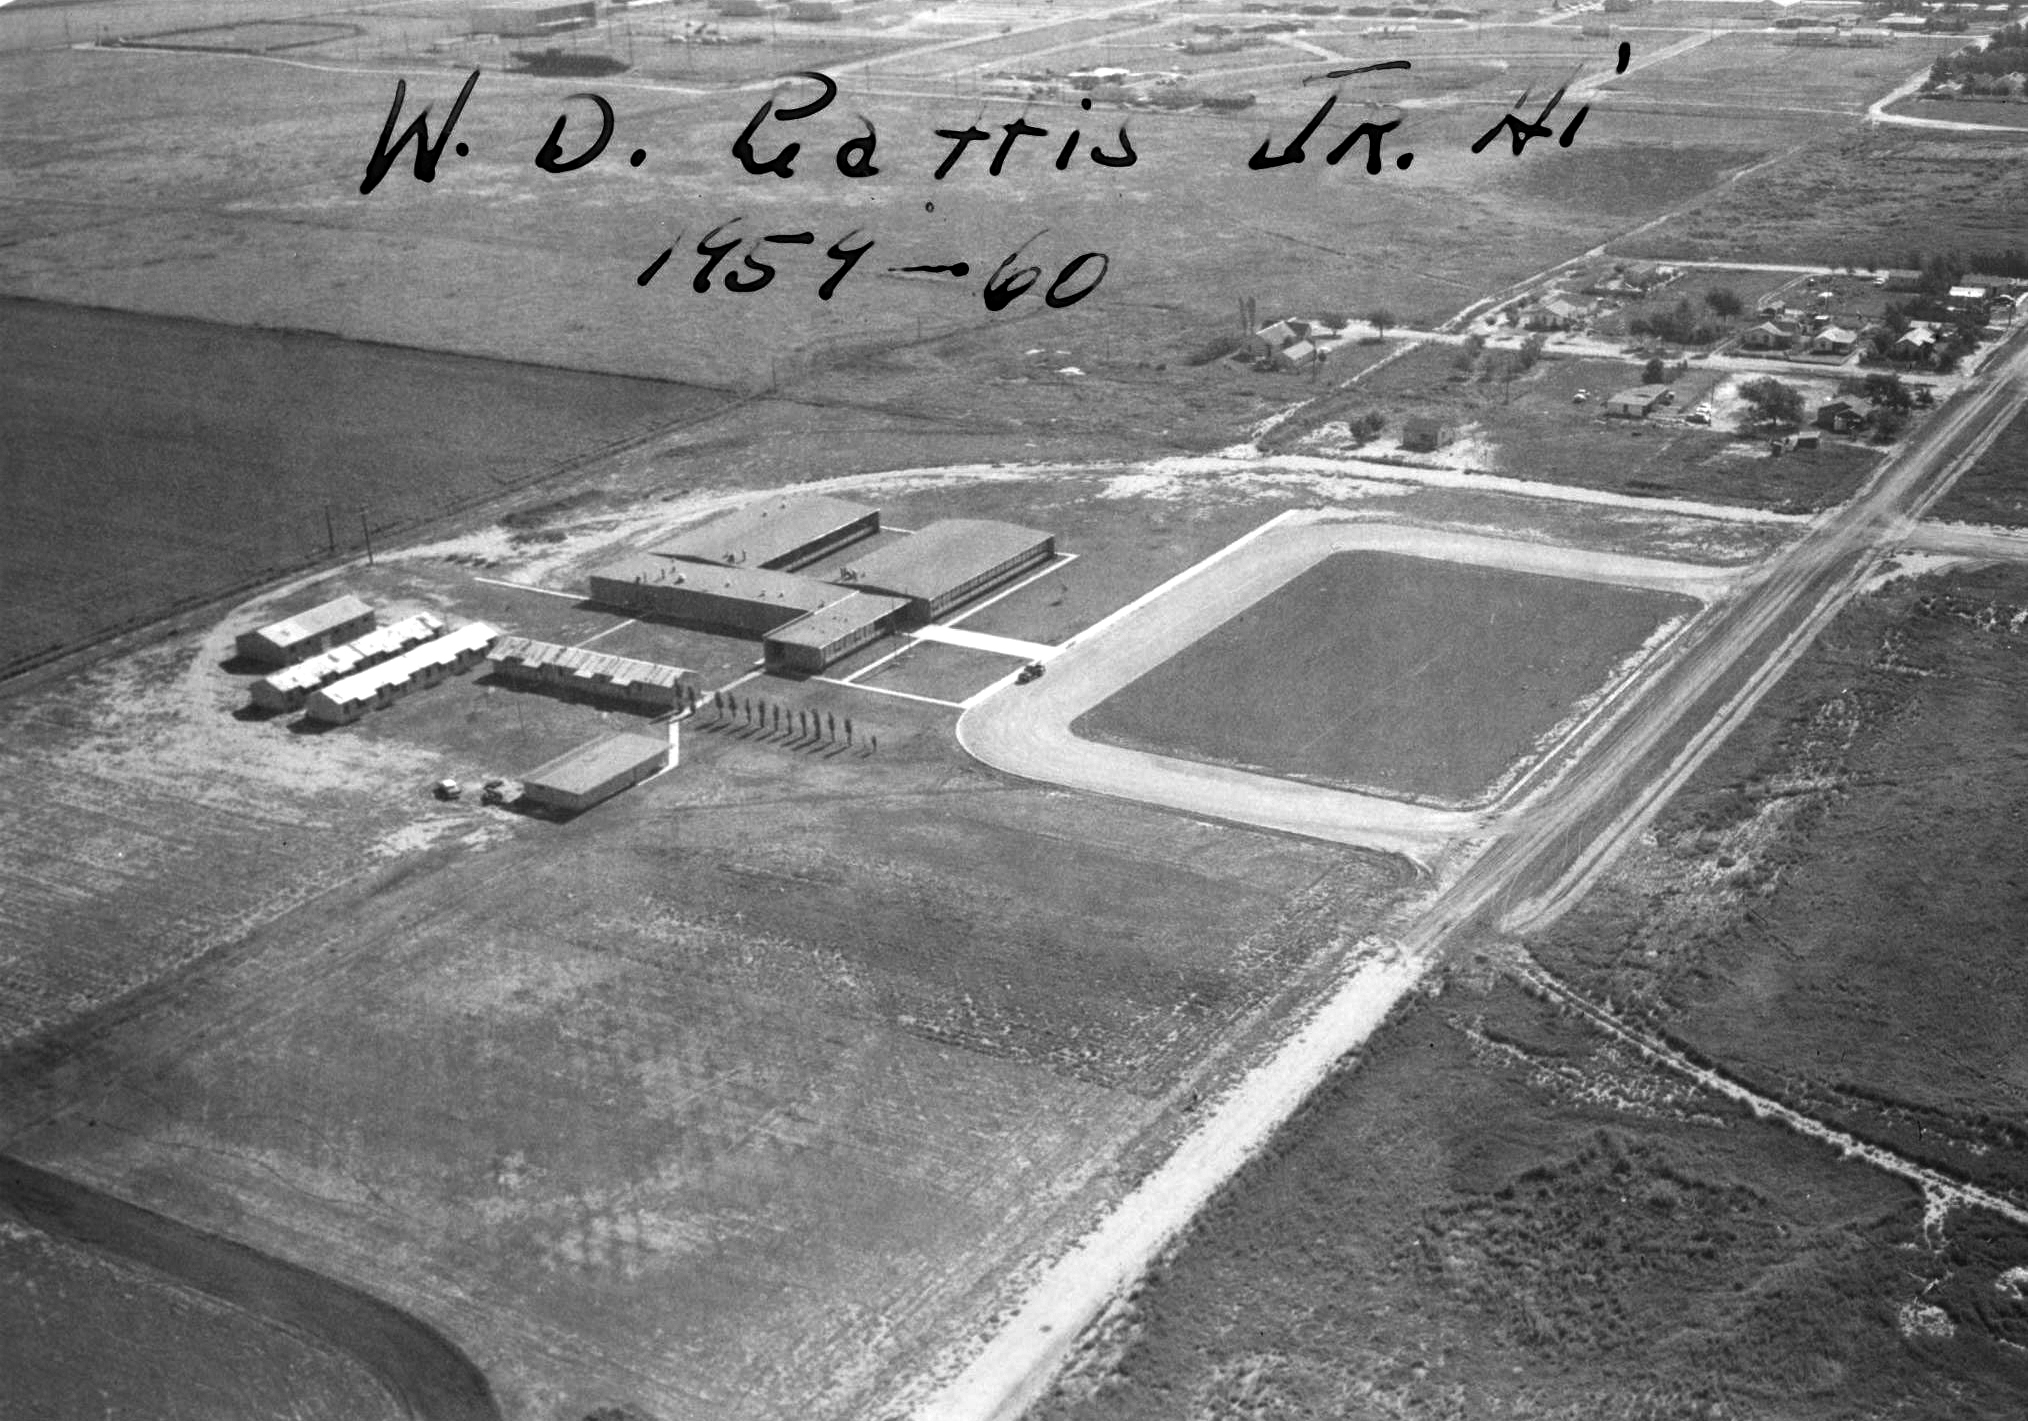 Historic photo of original Gattis Junior High School